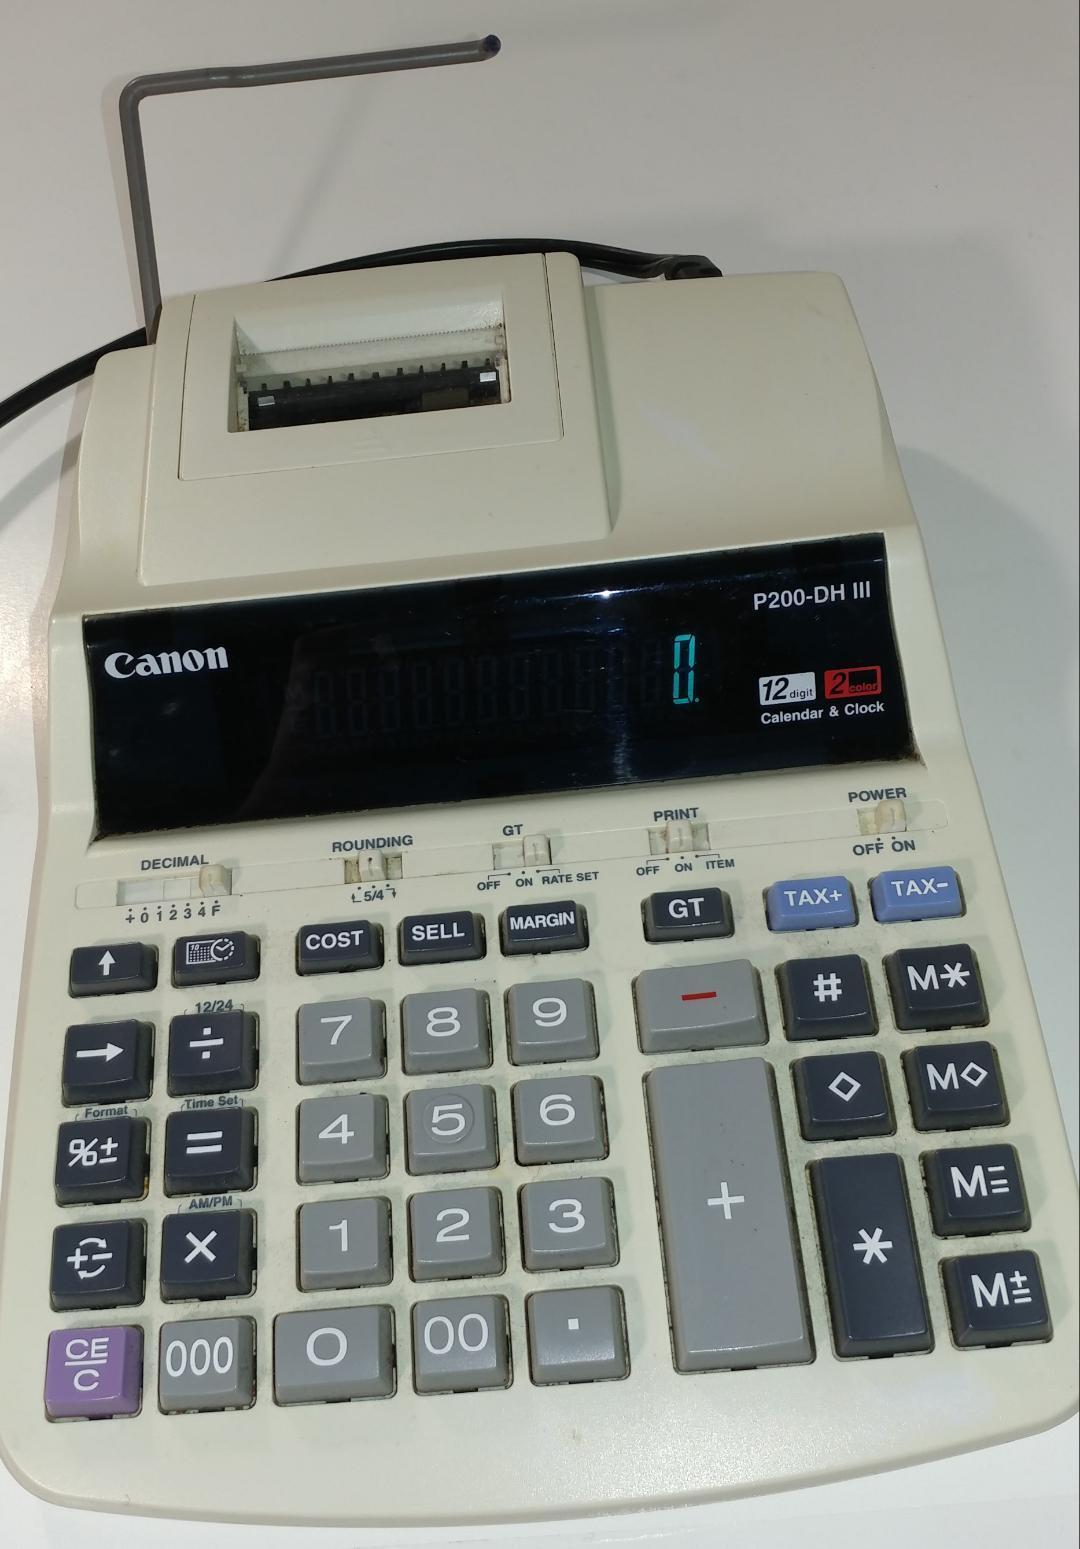 Canon P200-DH iii Desktop Printing Calculator Used,everything works very well